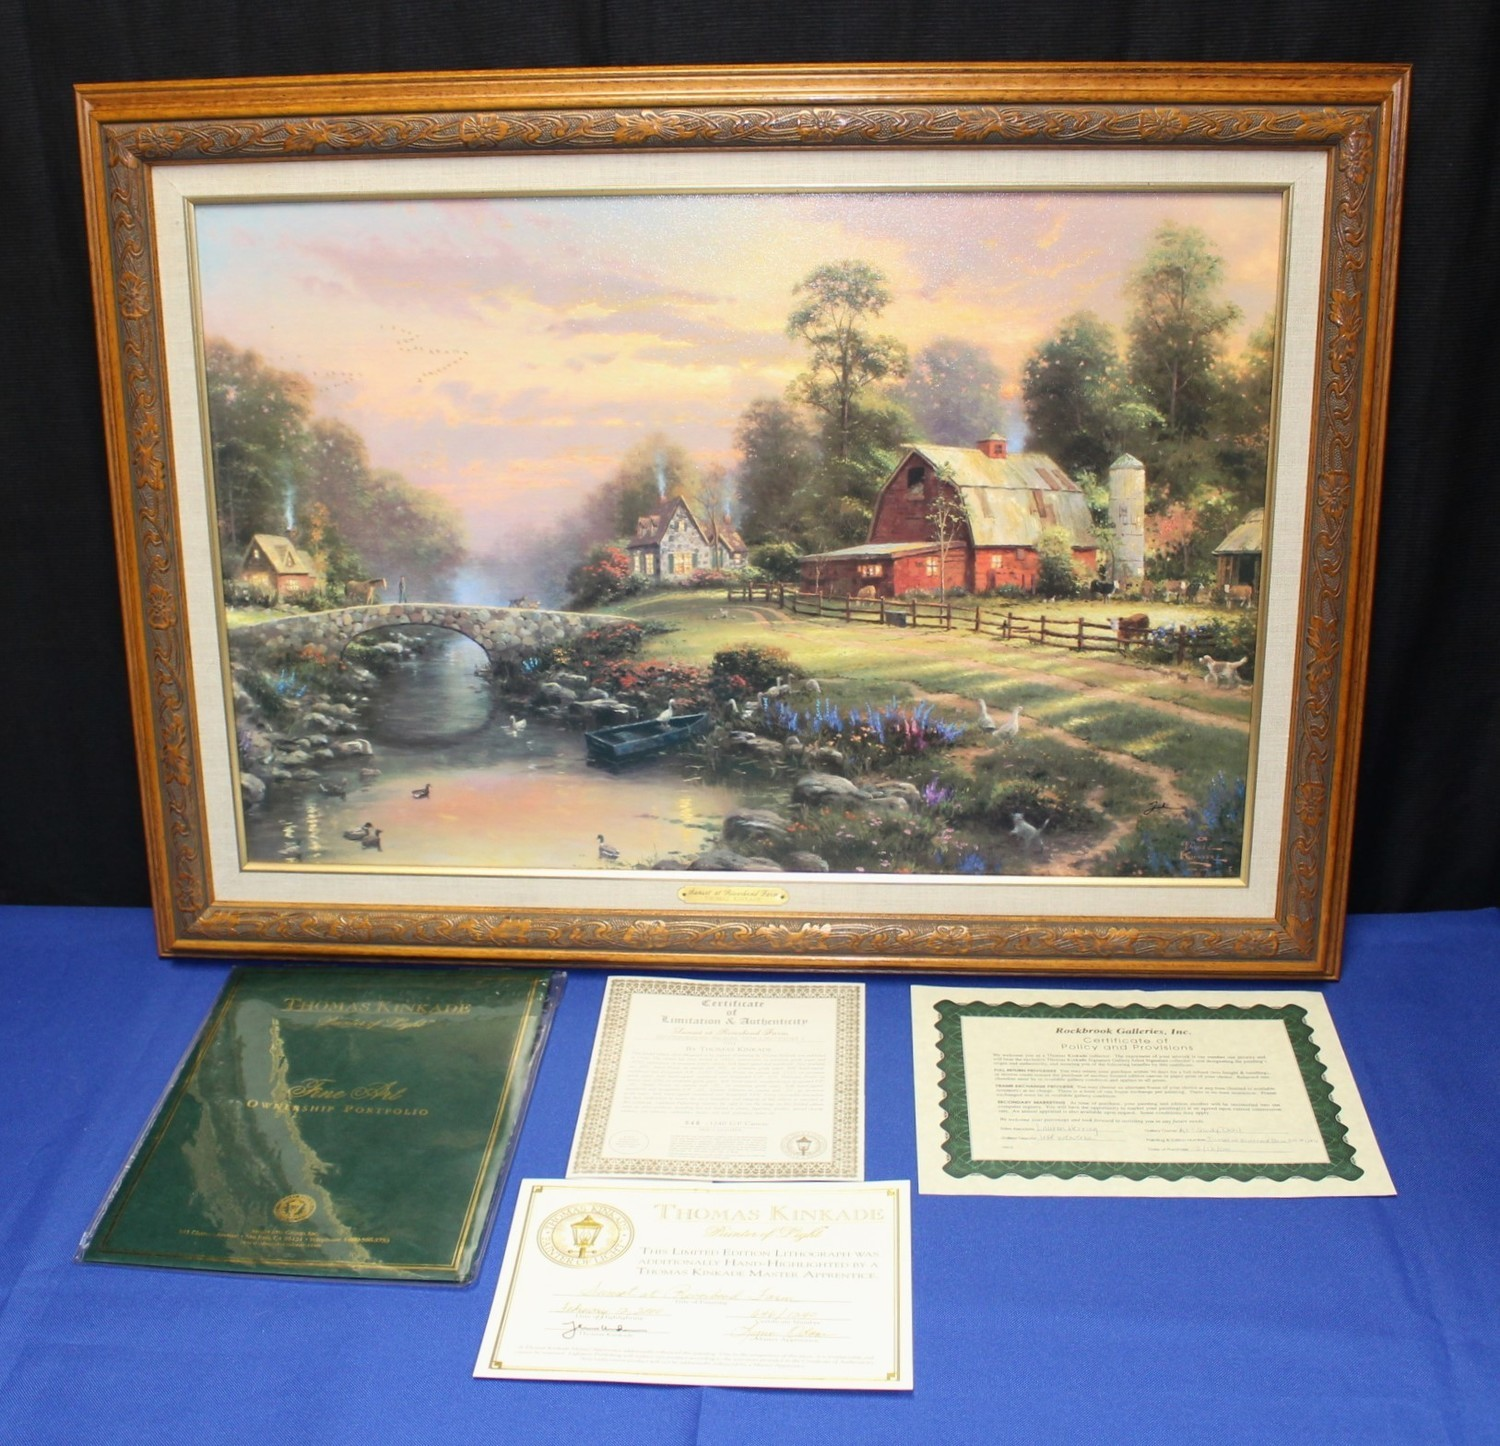 Thomas Kinkade Sunset at Riverbend Farm G/P 646/1240 Framed Lithograph on Canvas